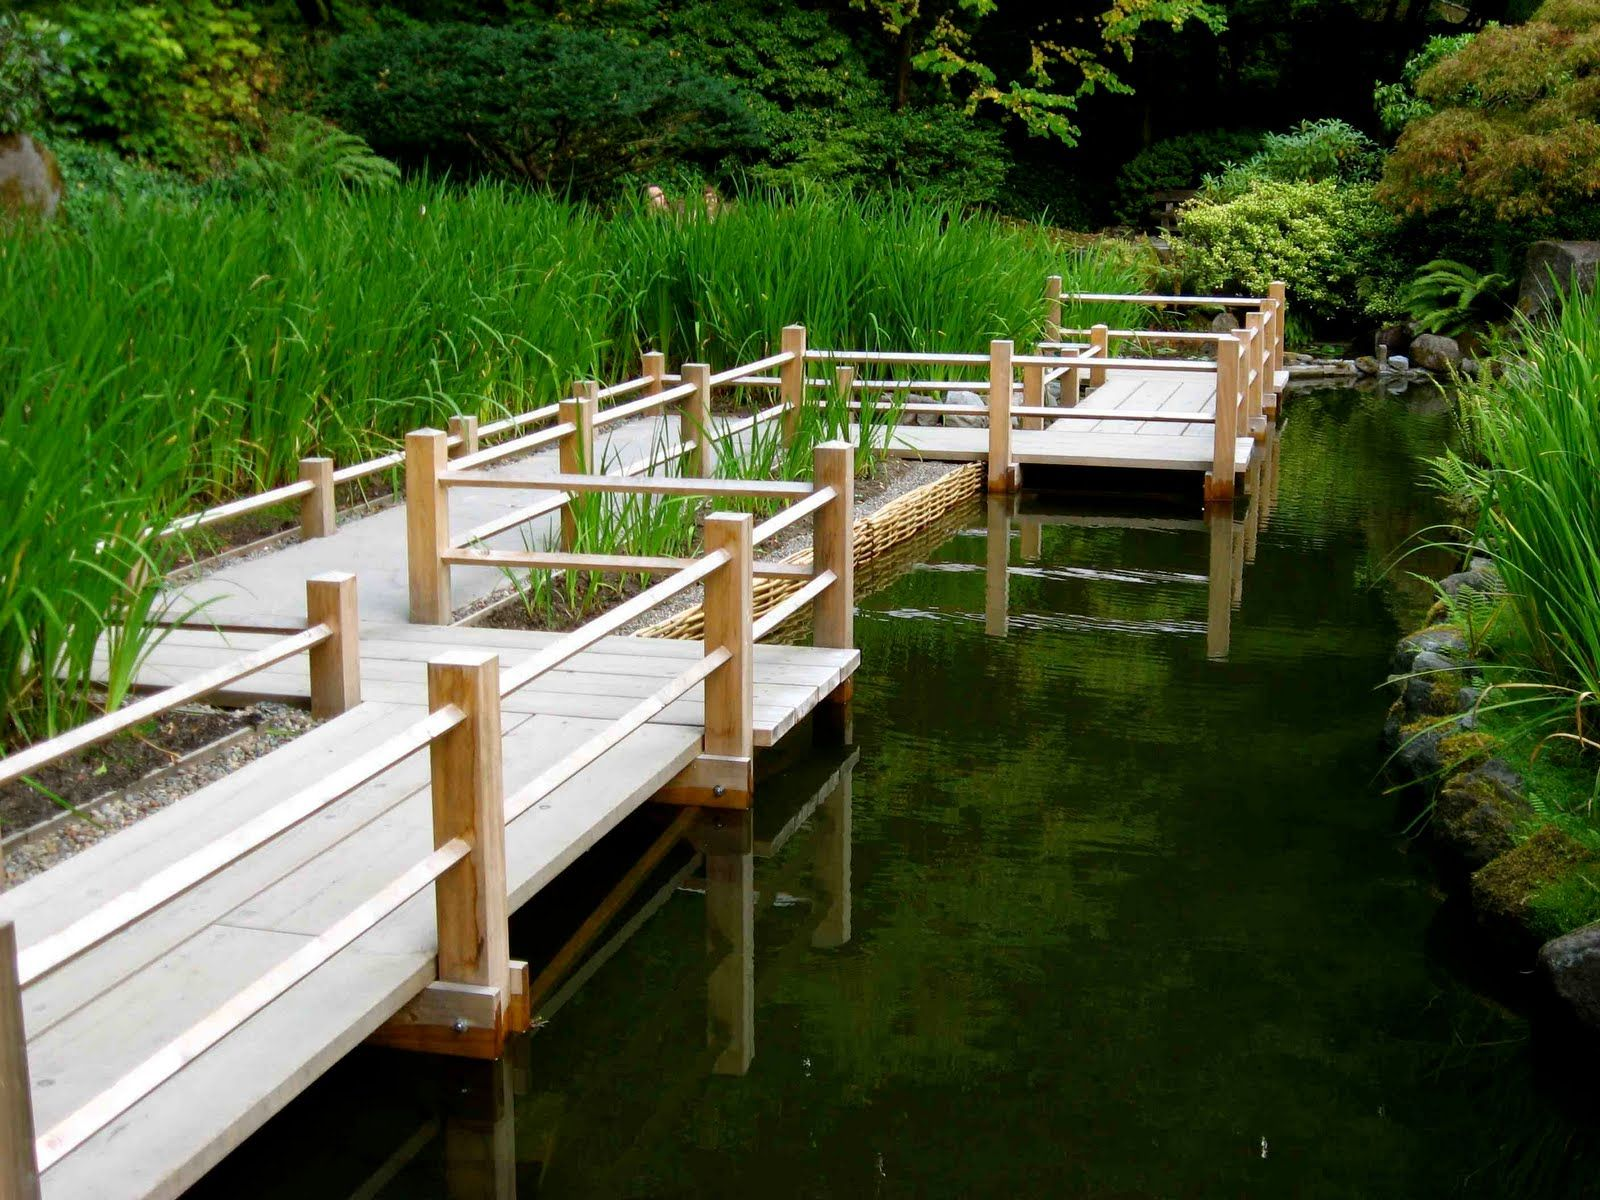 Garden designs with bridges and wishing wells landscaping ideas - Around Stream Japanese Garden Pdx